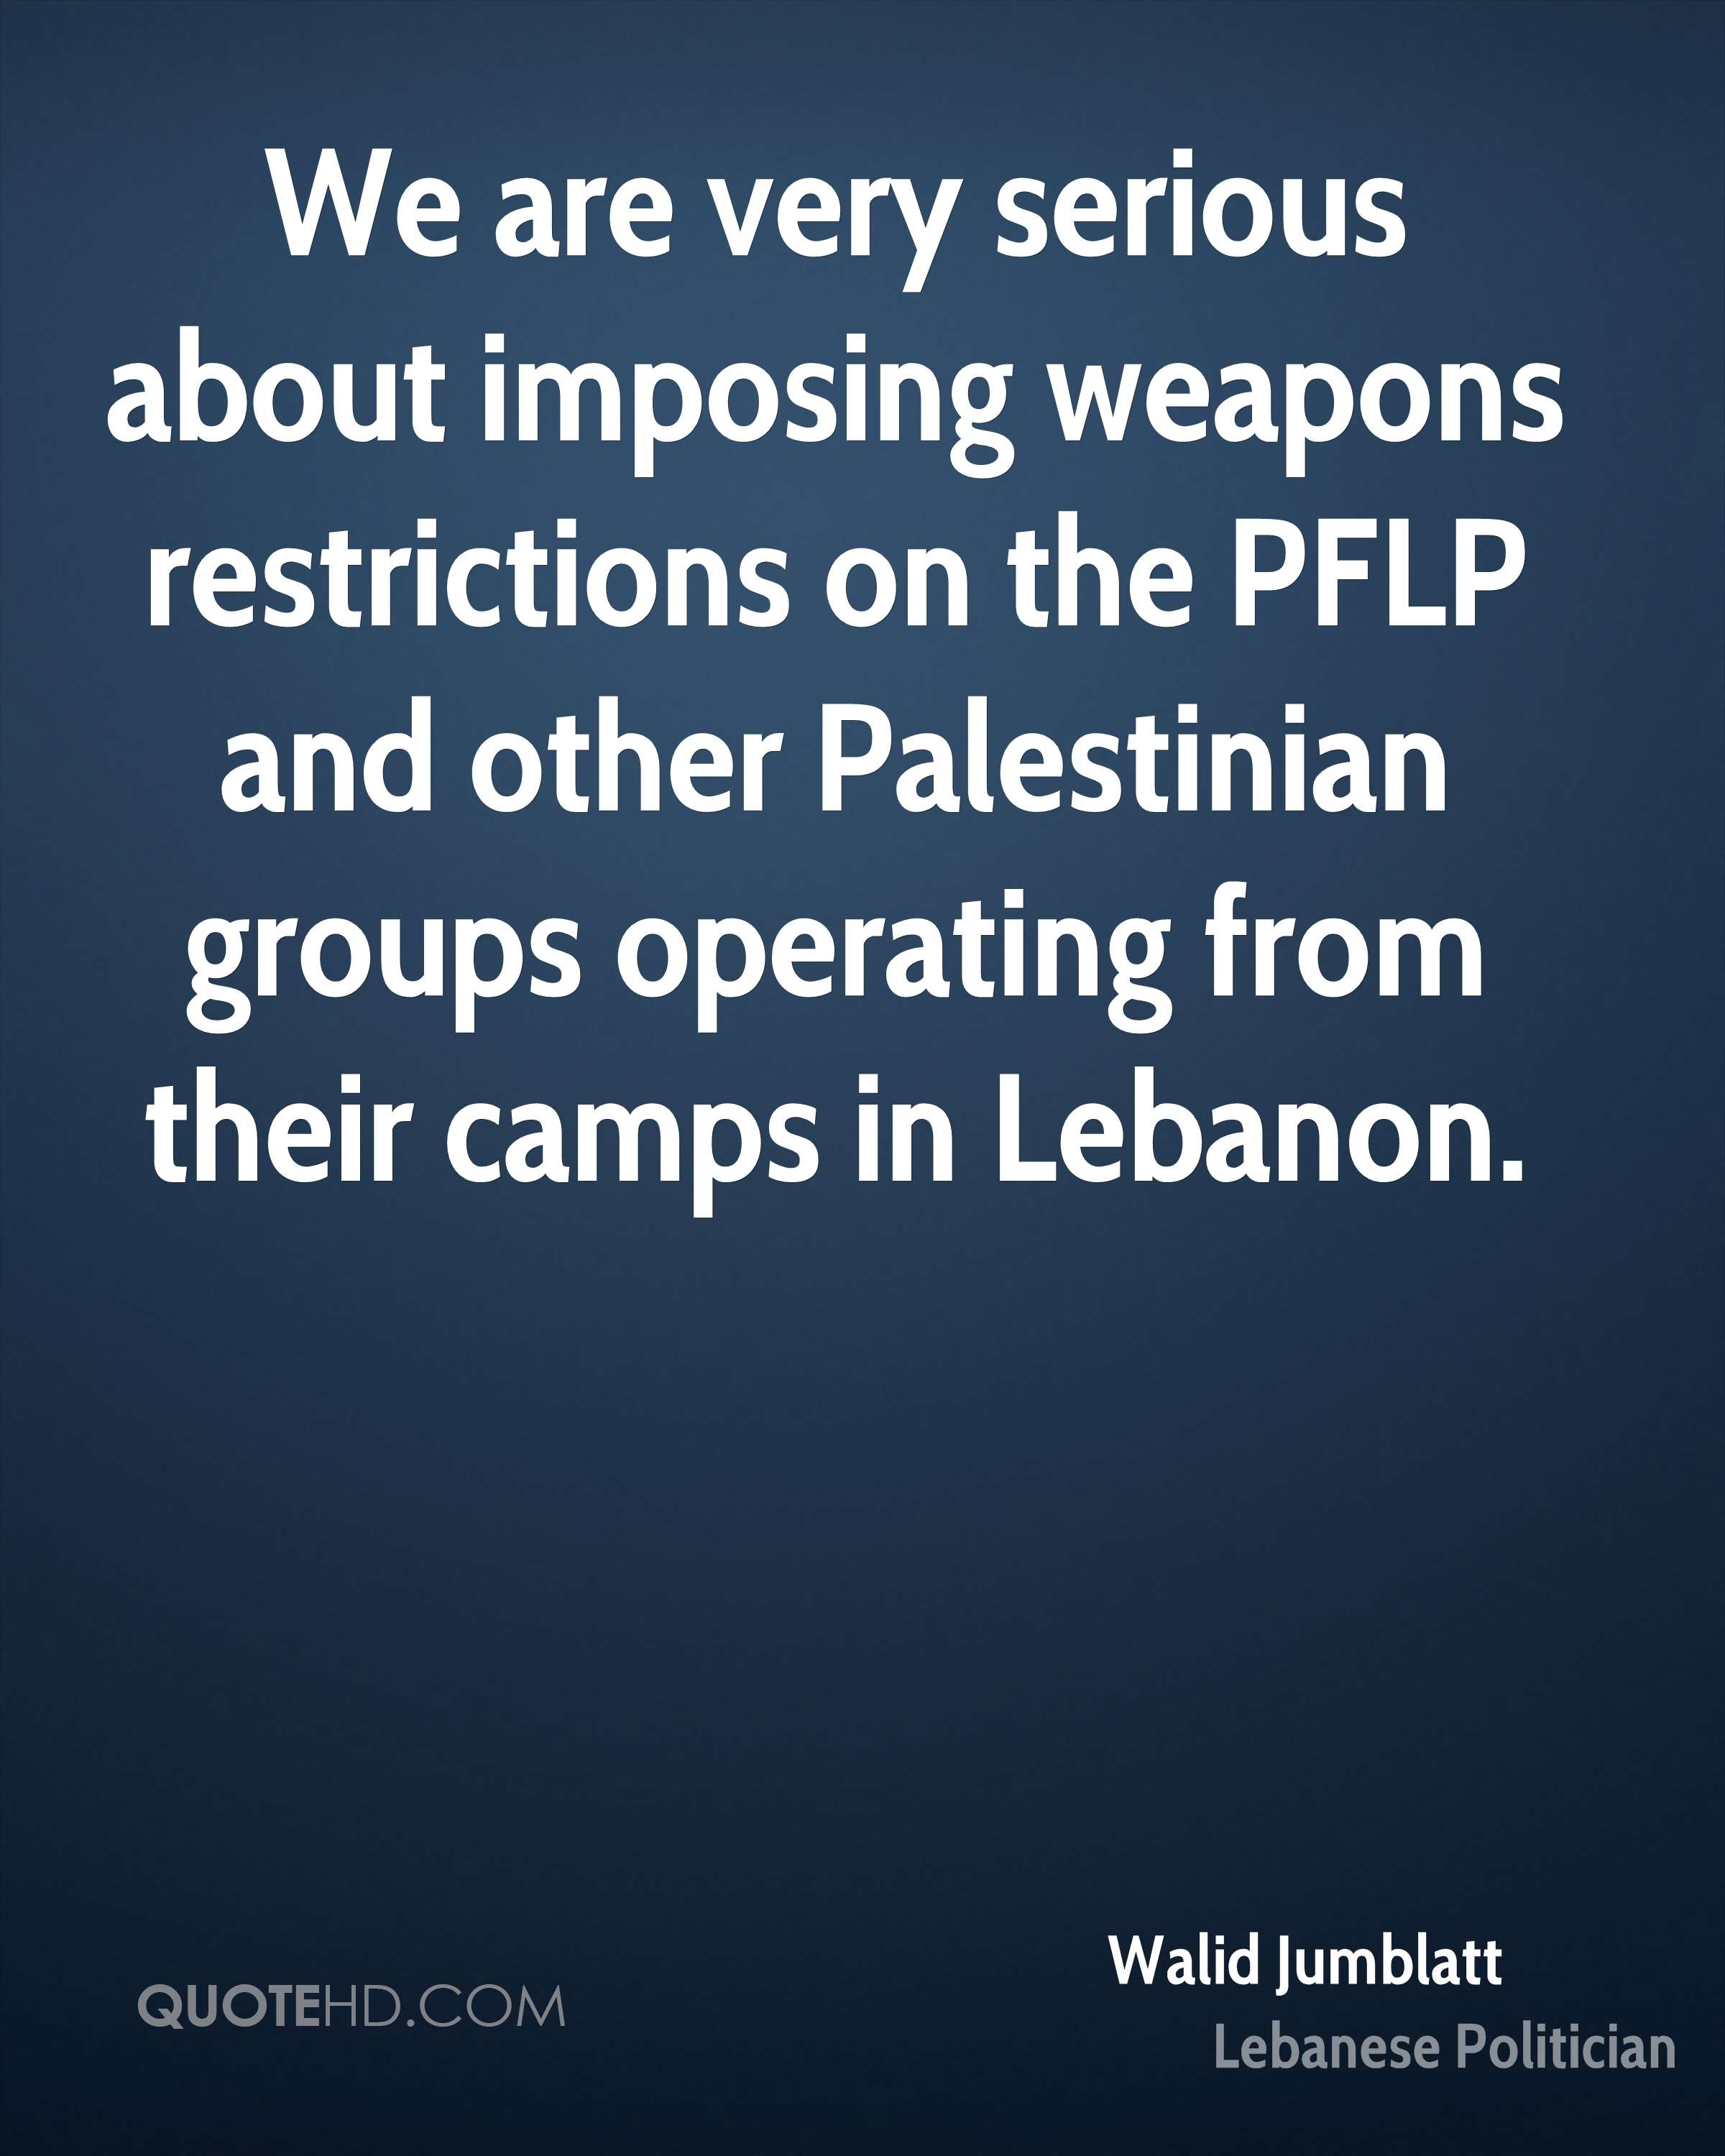 We are very serious about imposing weapons restrictions on the PFLP and other Palestinian groups operating from their camps in Lebanon.